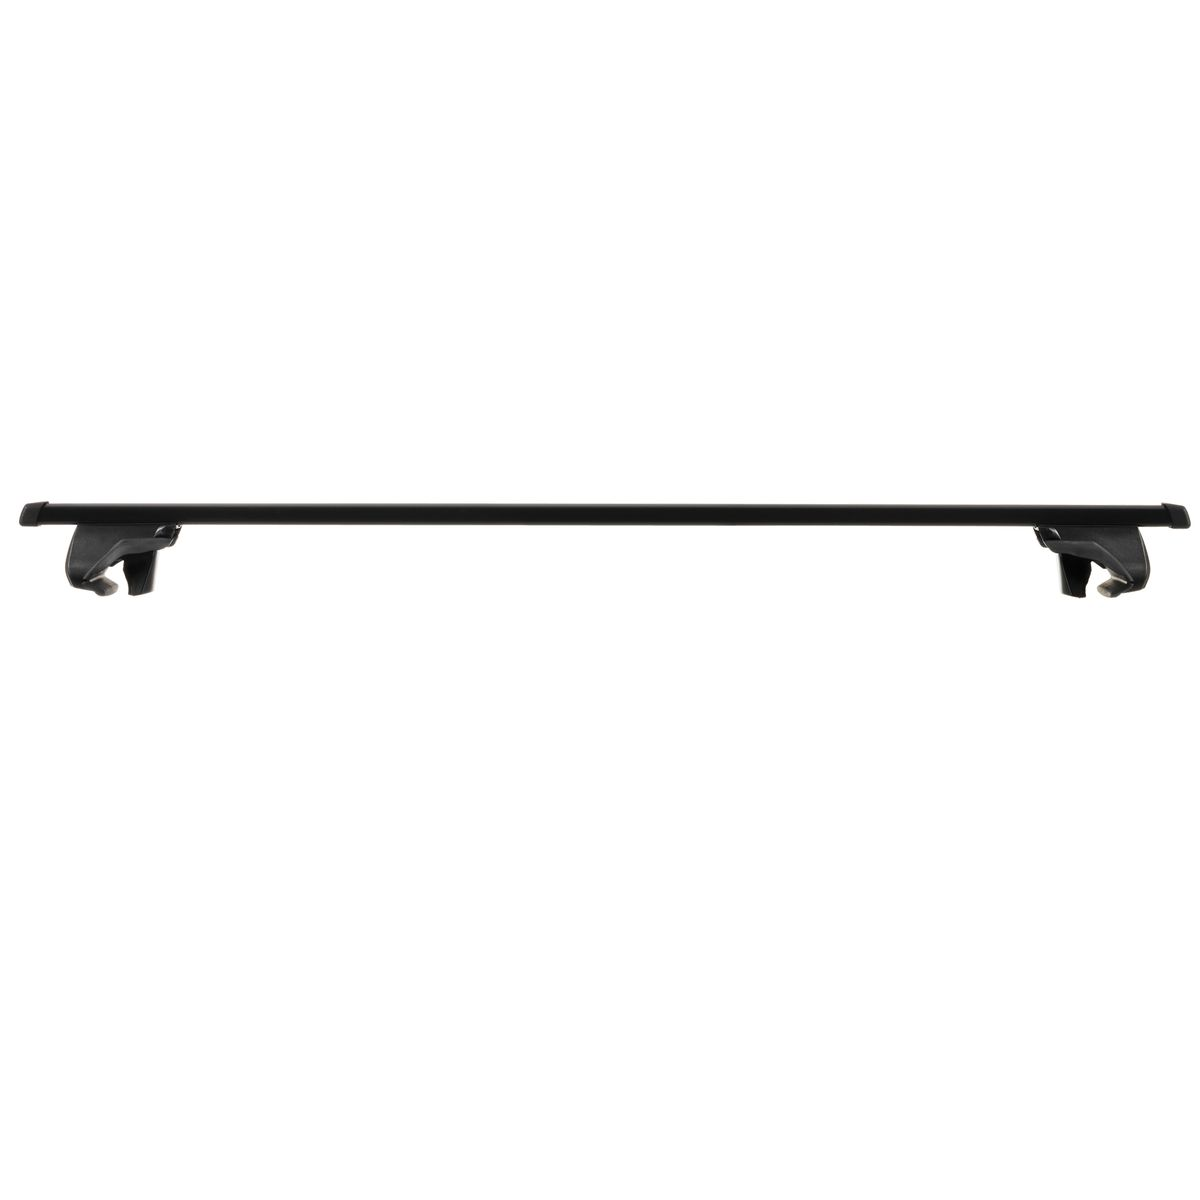 Smartrack 784/785 roof rack